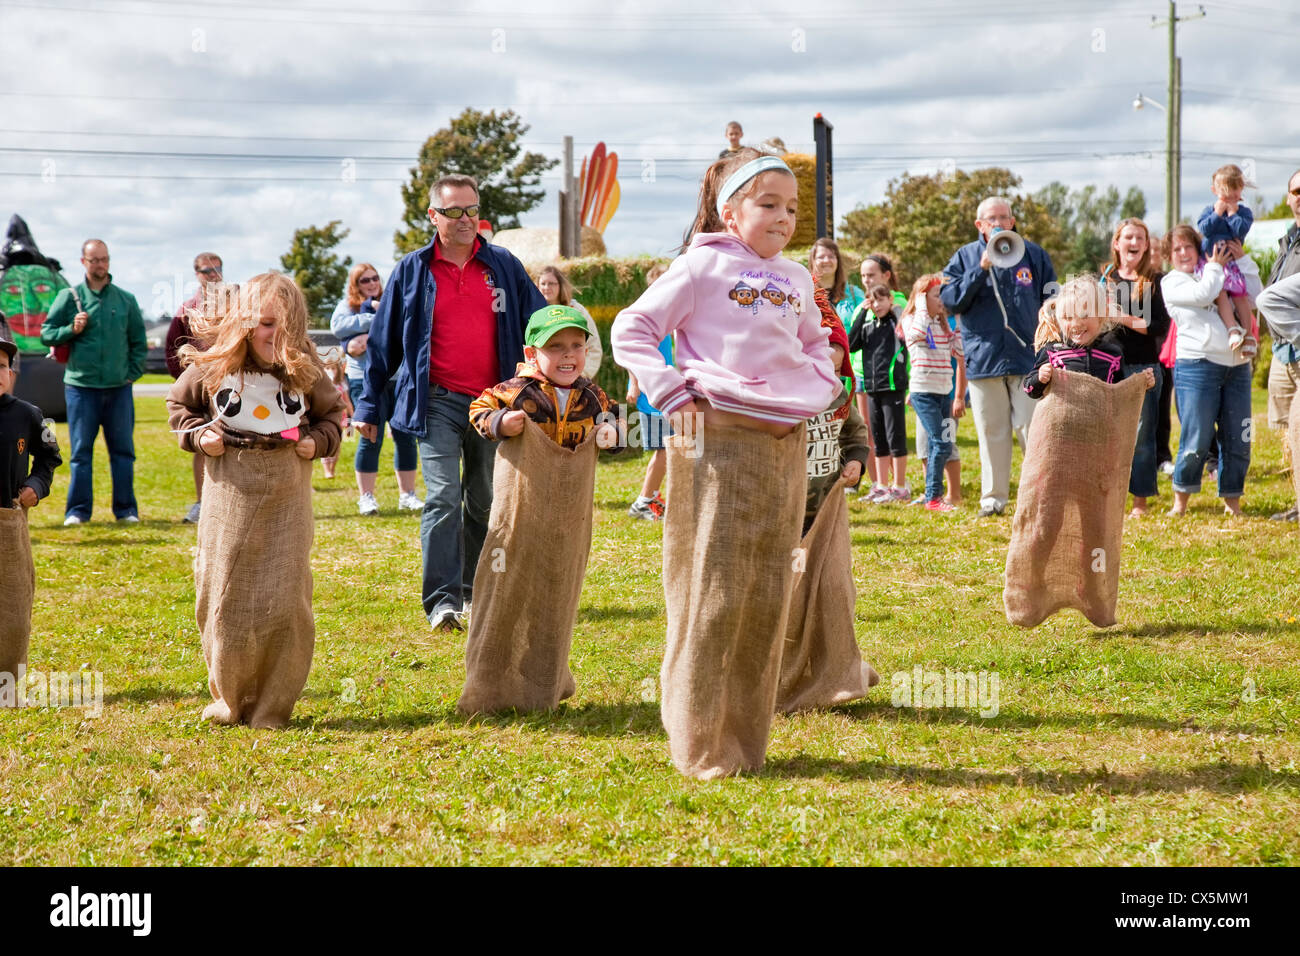 Kids in the potato sack race at the annual Scarecrow Festival held in Summerside, Prince Edward Island, Canada. - Stock Image